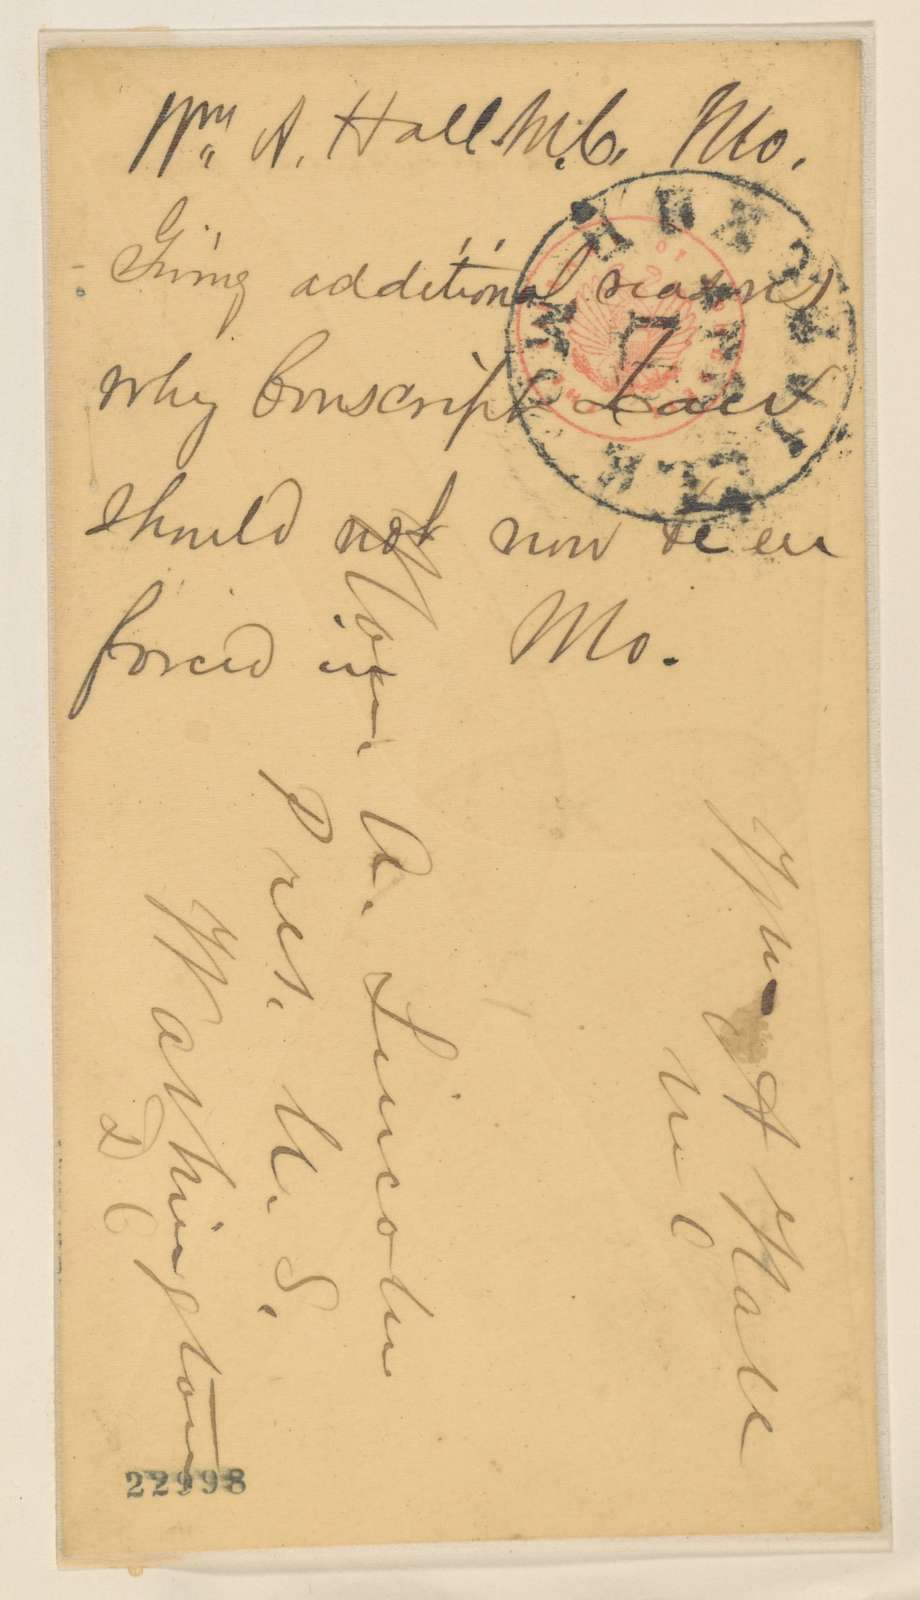 Abraham Lincoln papers: Series 1. General Correspondence. 1833-1916: William A. Hall to Abraham Lincoln, Wednesday, April 15, 1863 (Conscription Act and Missouri)